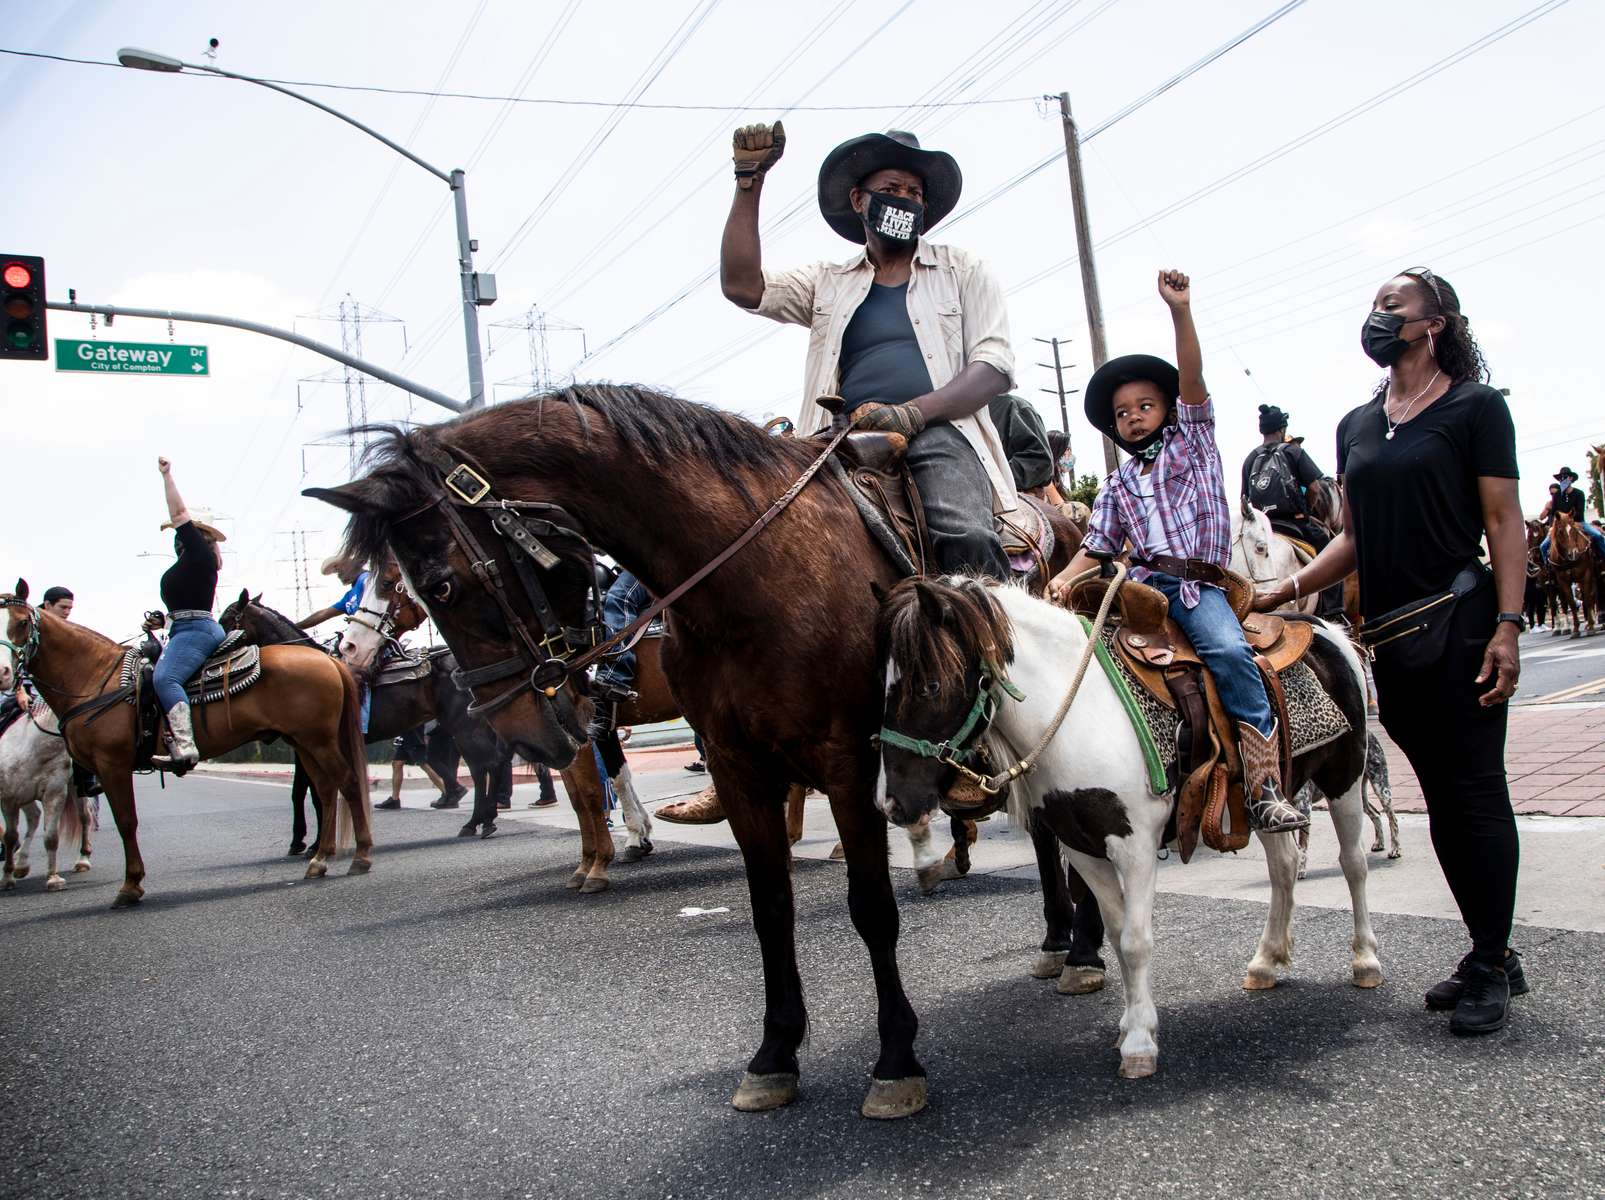 The Compton Cowboys ride along with a thousand walking protesters during a {quote}peace ride{quote} for George Floyd  on June 7, 2020, in Compton, California.This is the 13th day of protests since George Floyd died in Minneapolis police custody on May 25.